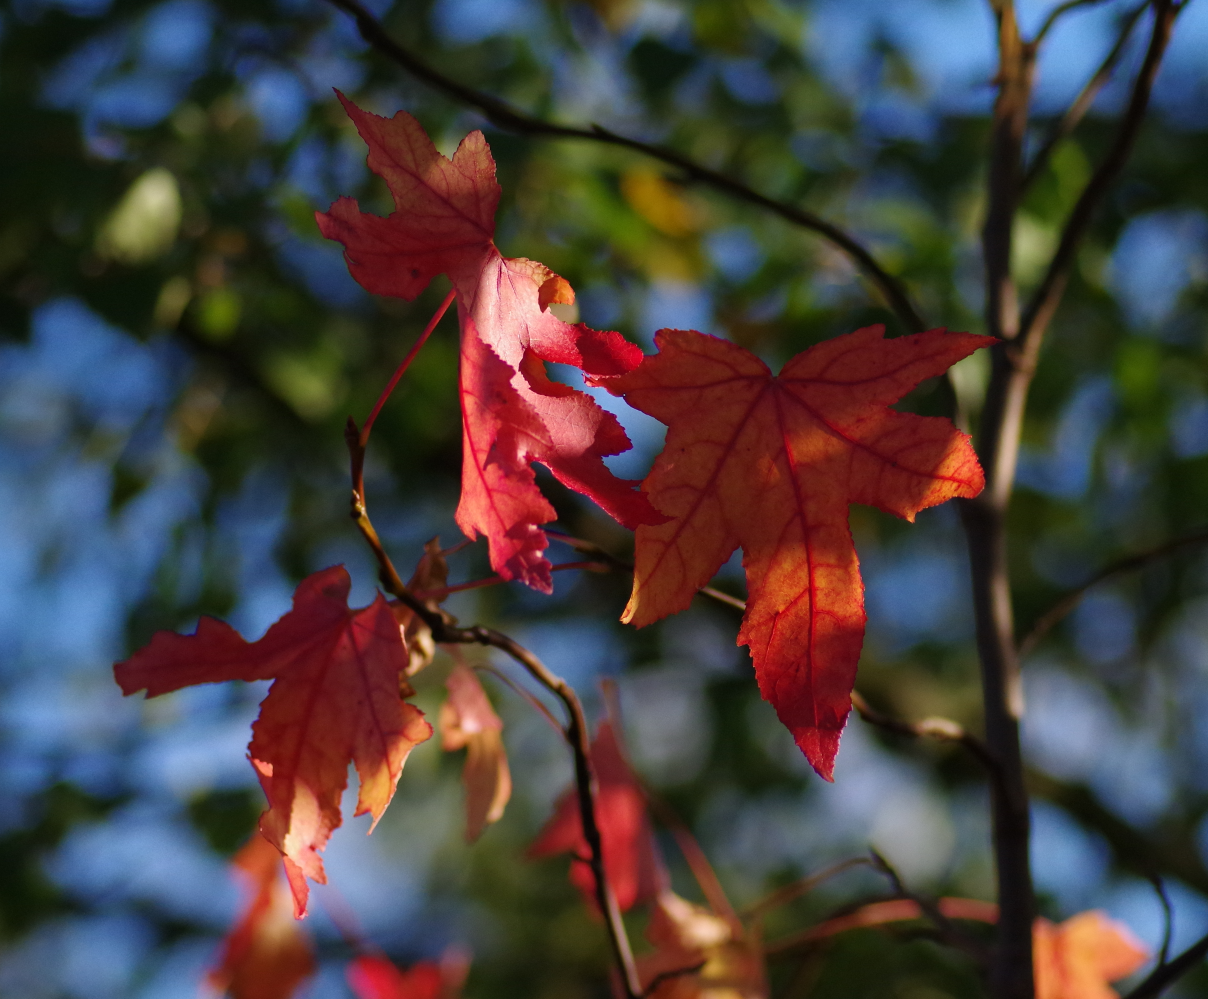 Sunlight and Autumn Leaves